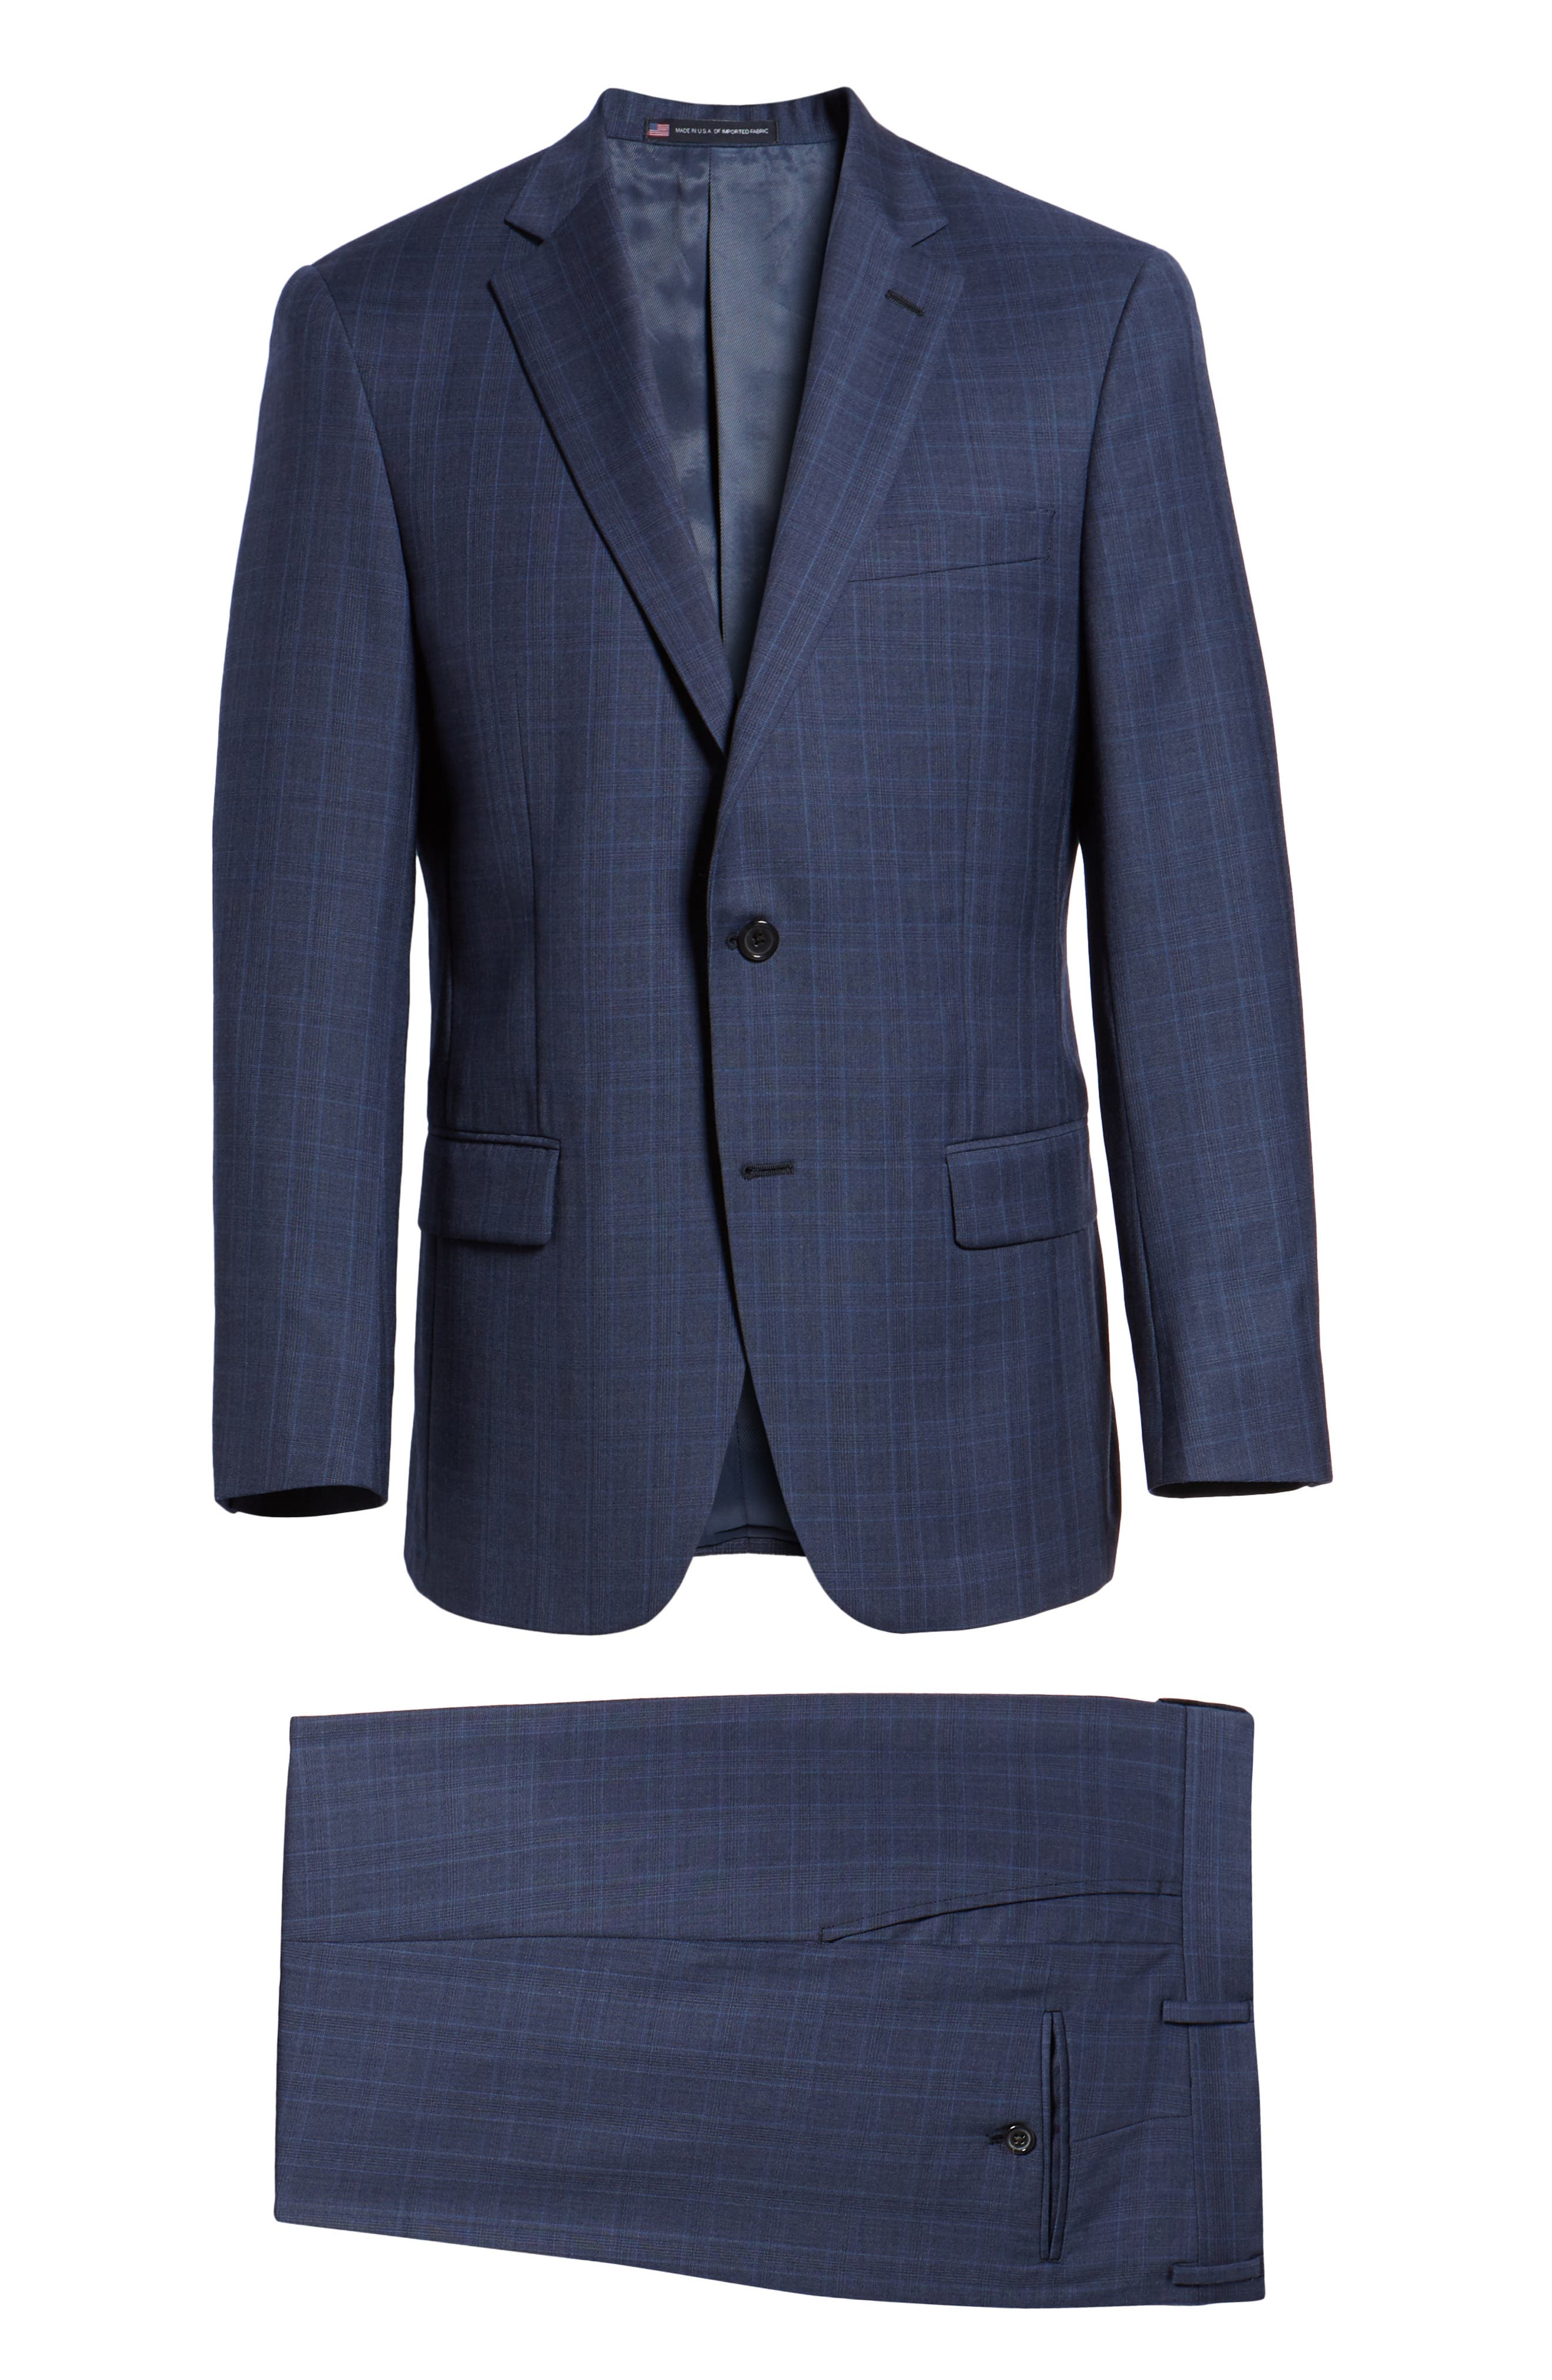 New York Classic Fit Plaid Wool Suit,                             Alternate thumbnail 8, color,                             MED BLUE